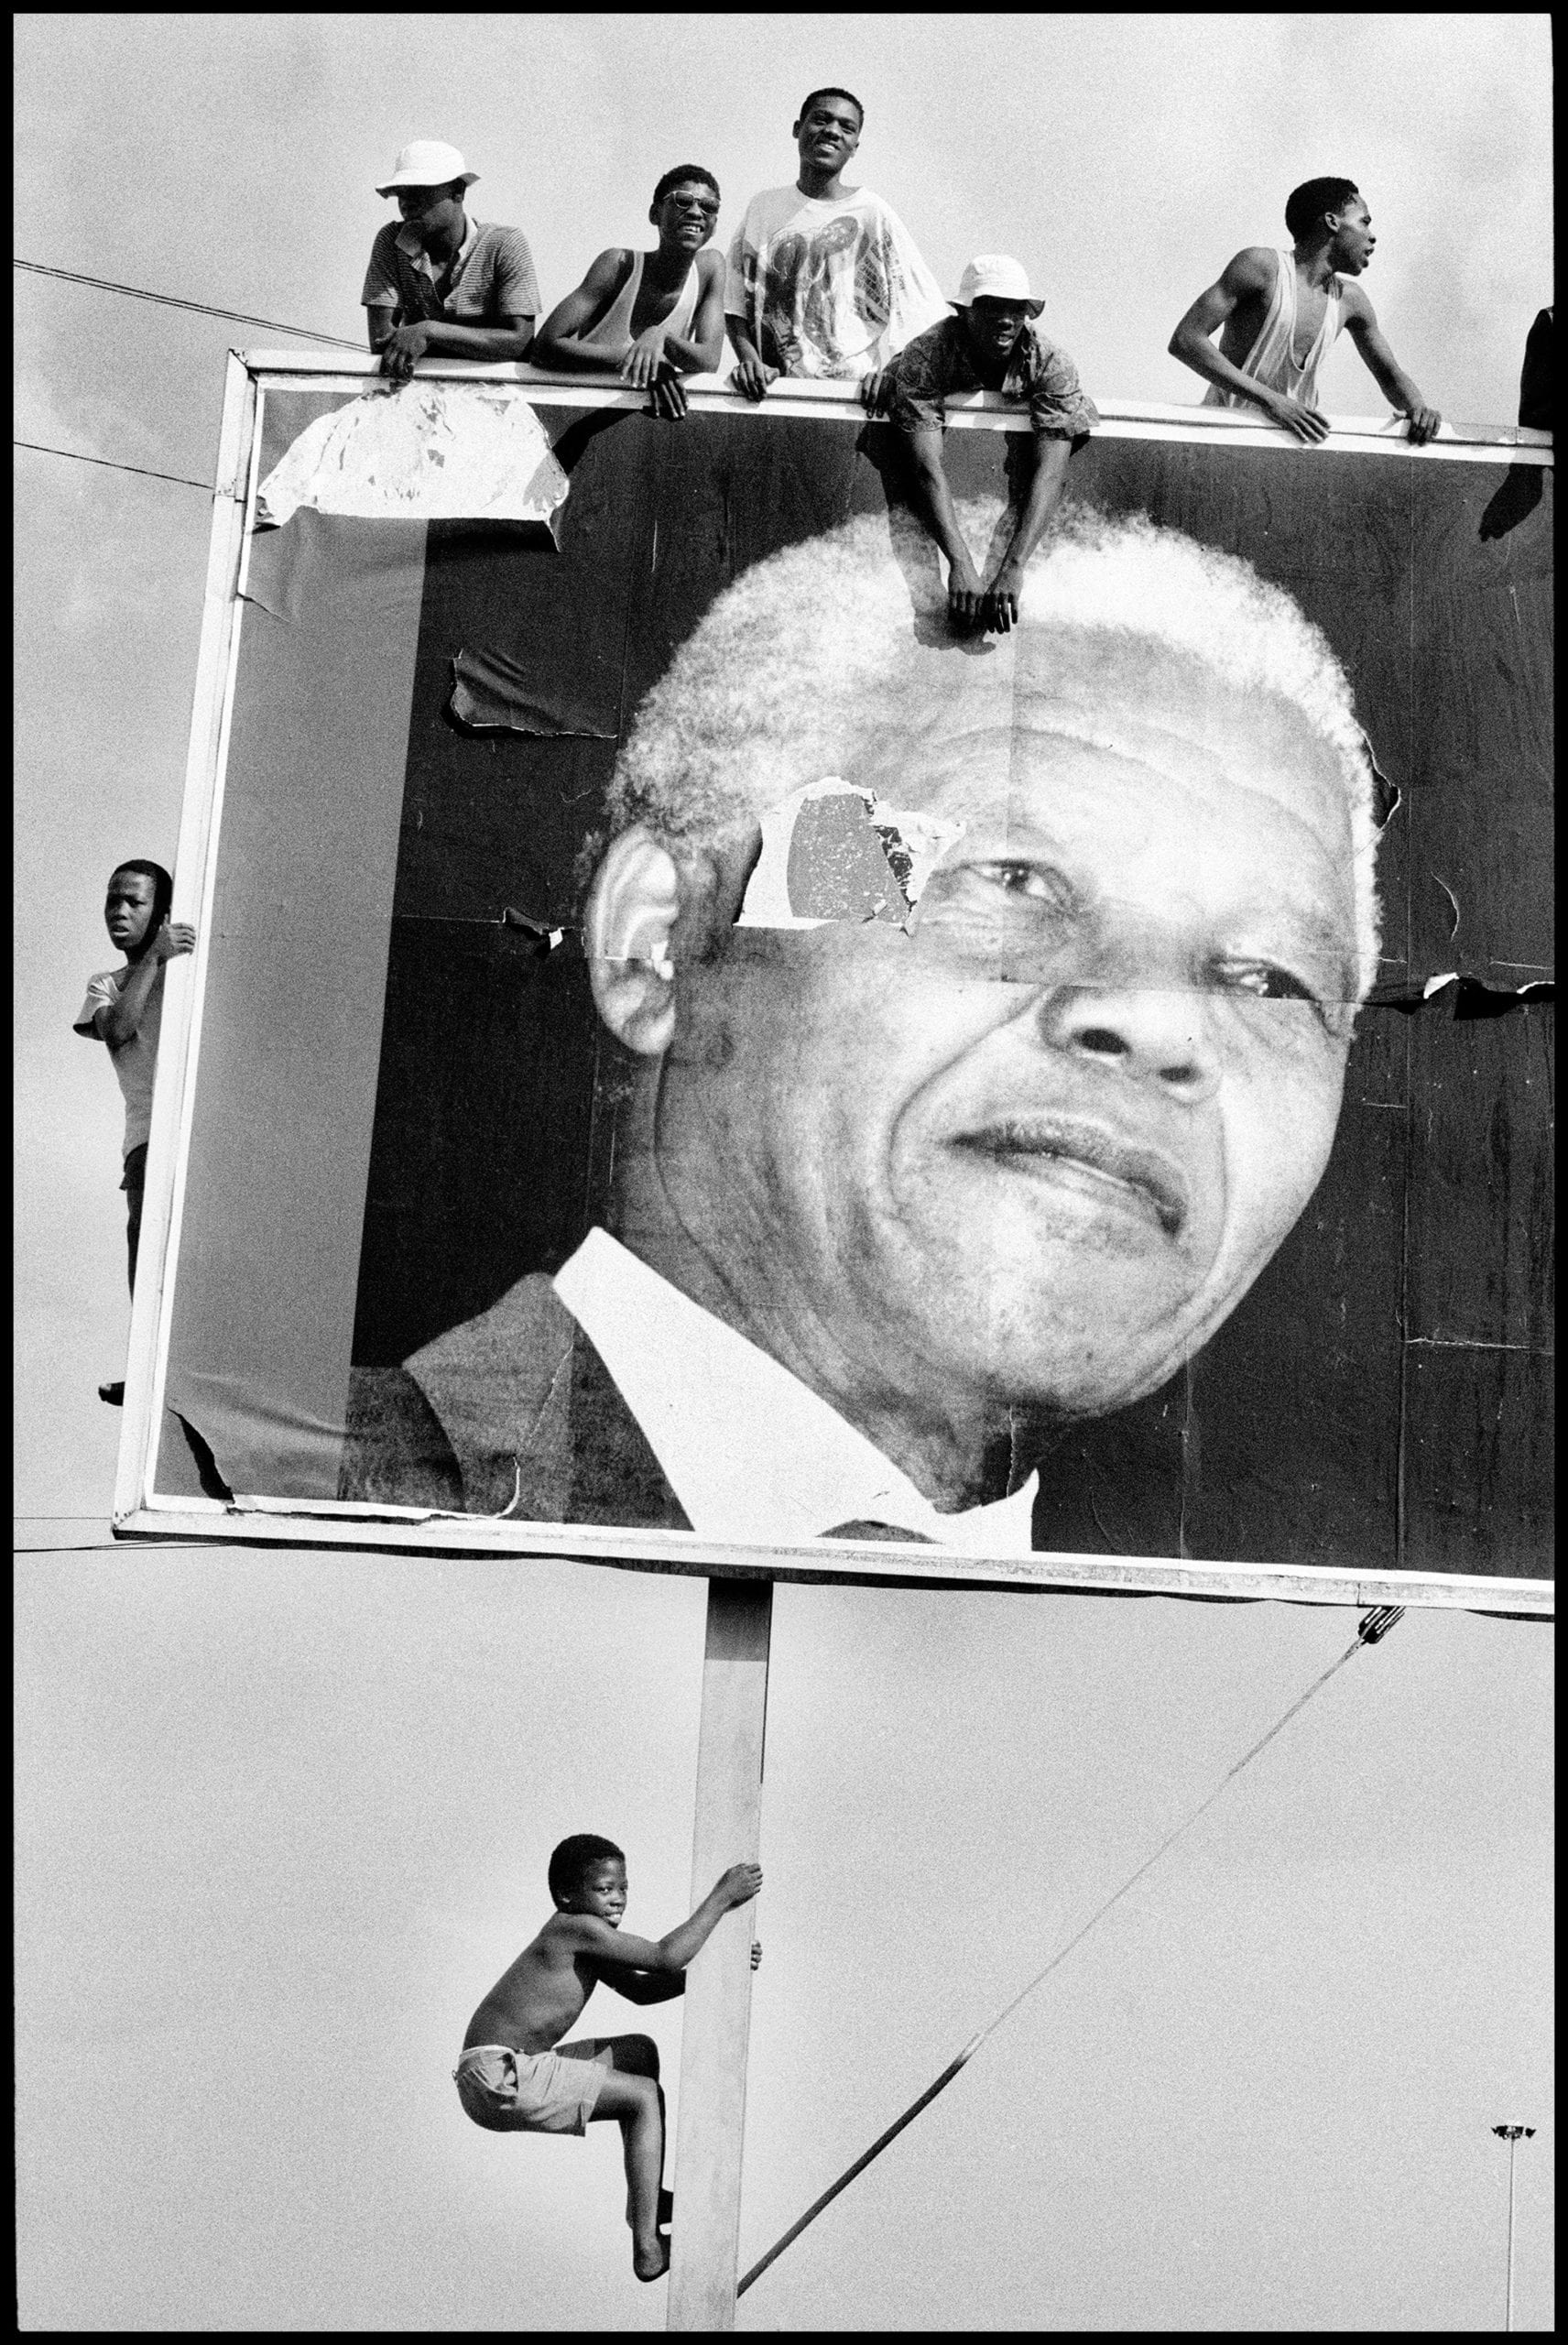 SOUTH AFRICA. Natal. Lamontville. Supporters climb to every vantage point whilst awaiting the arrival of Nelson MANDELA. 1994